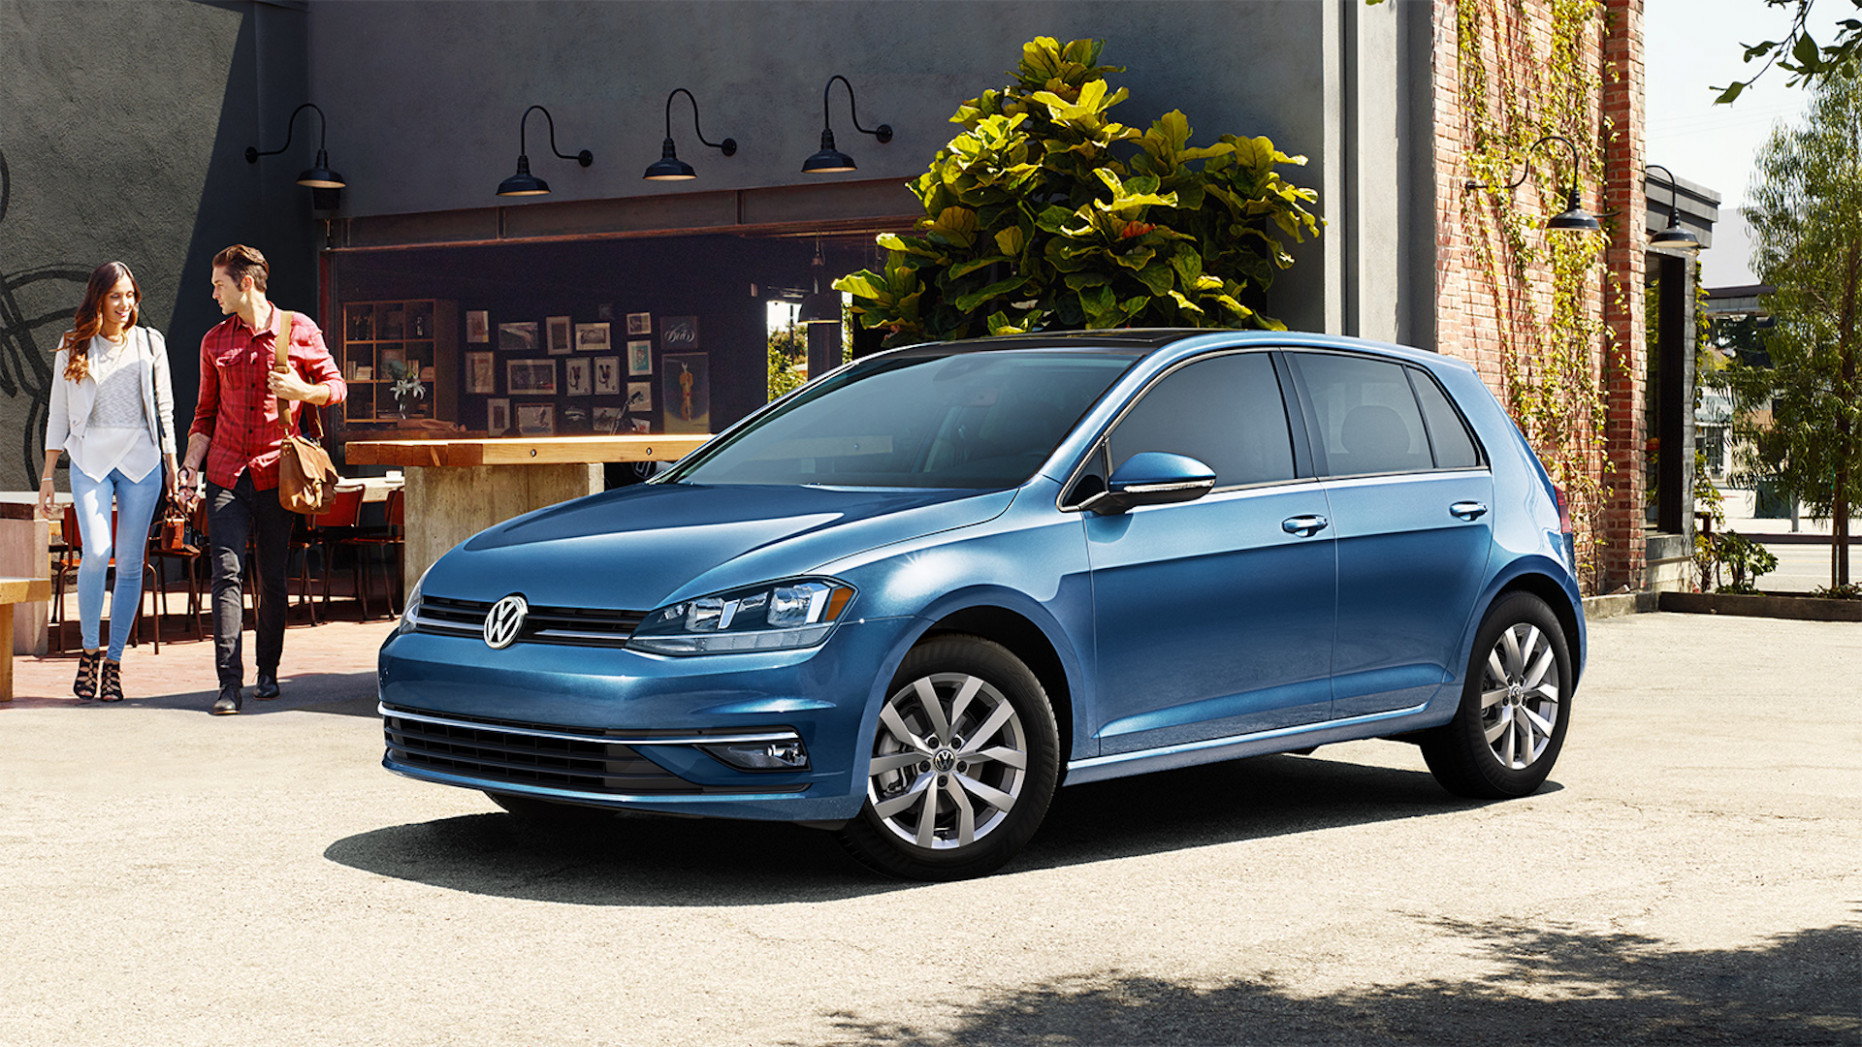 7 Volkswagen Golf (VW) Review, Ratings, Specs, Prices, and ..